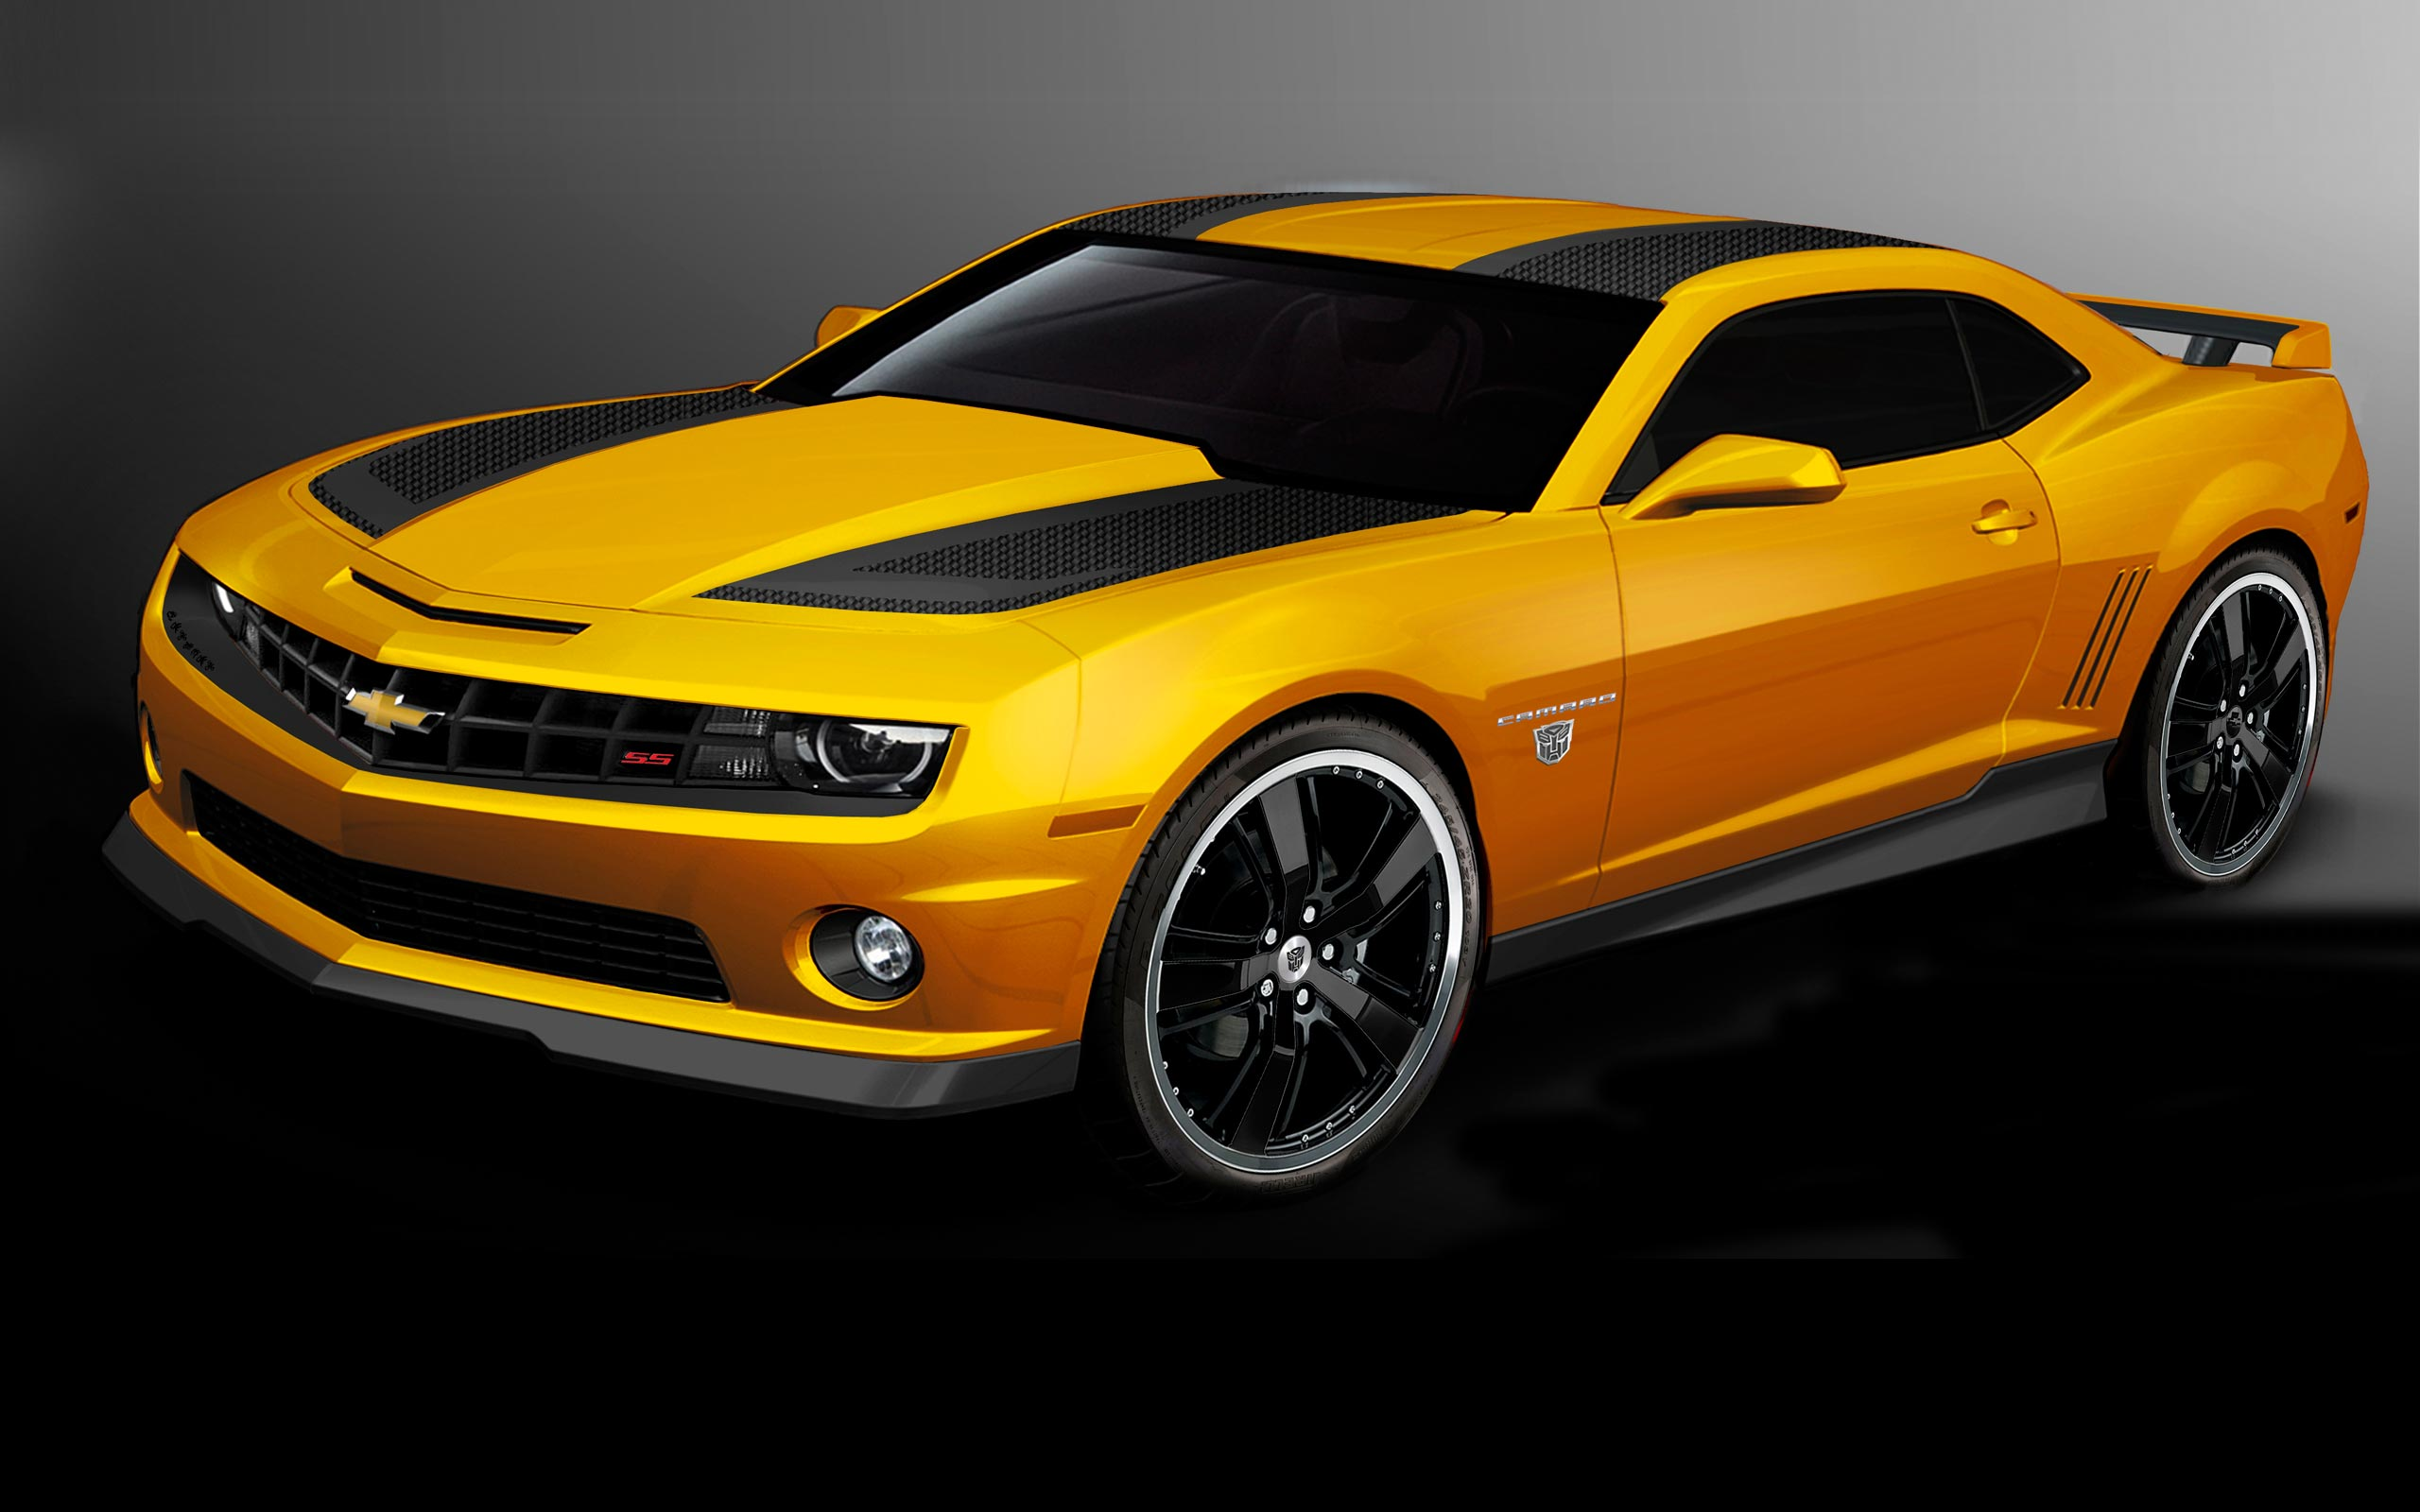 Black Cars Wallpaper 7 Background: Black And Yellow Cool Cars 16 Desktop Background